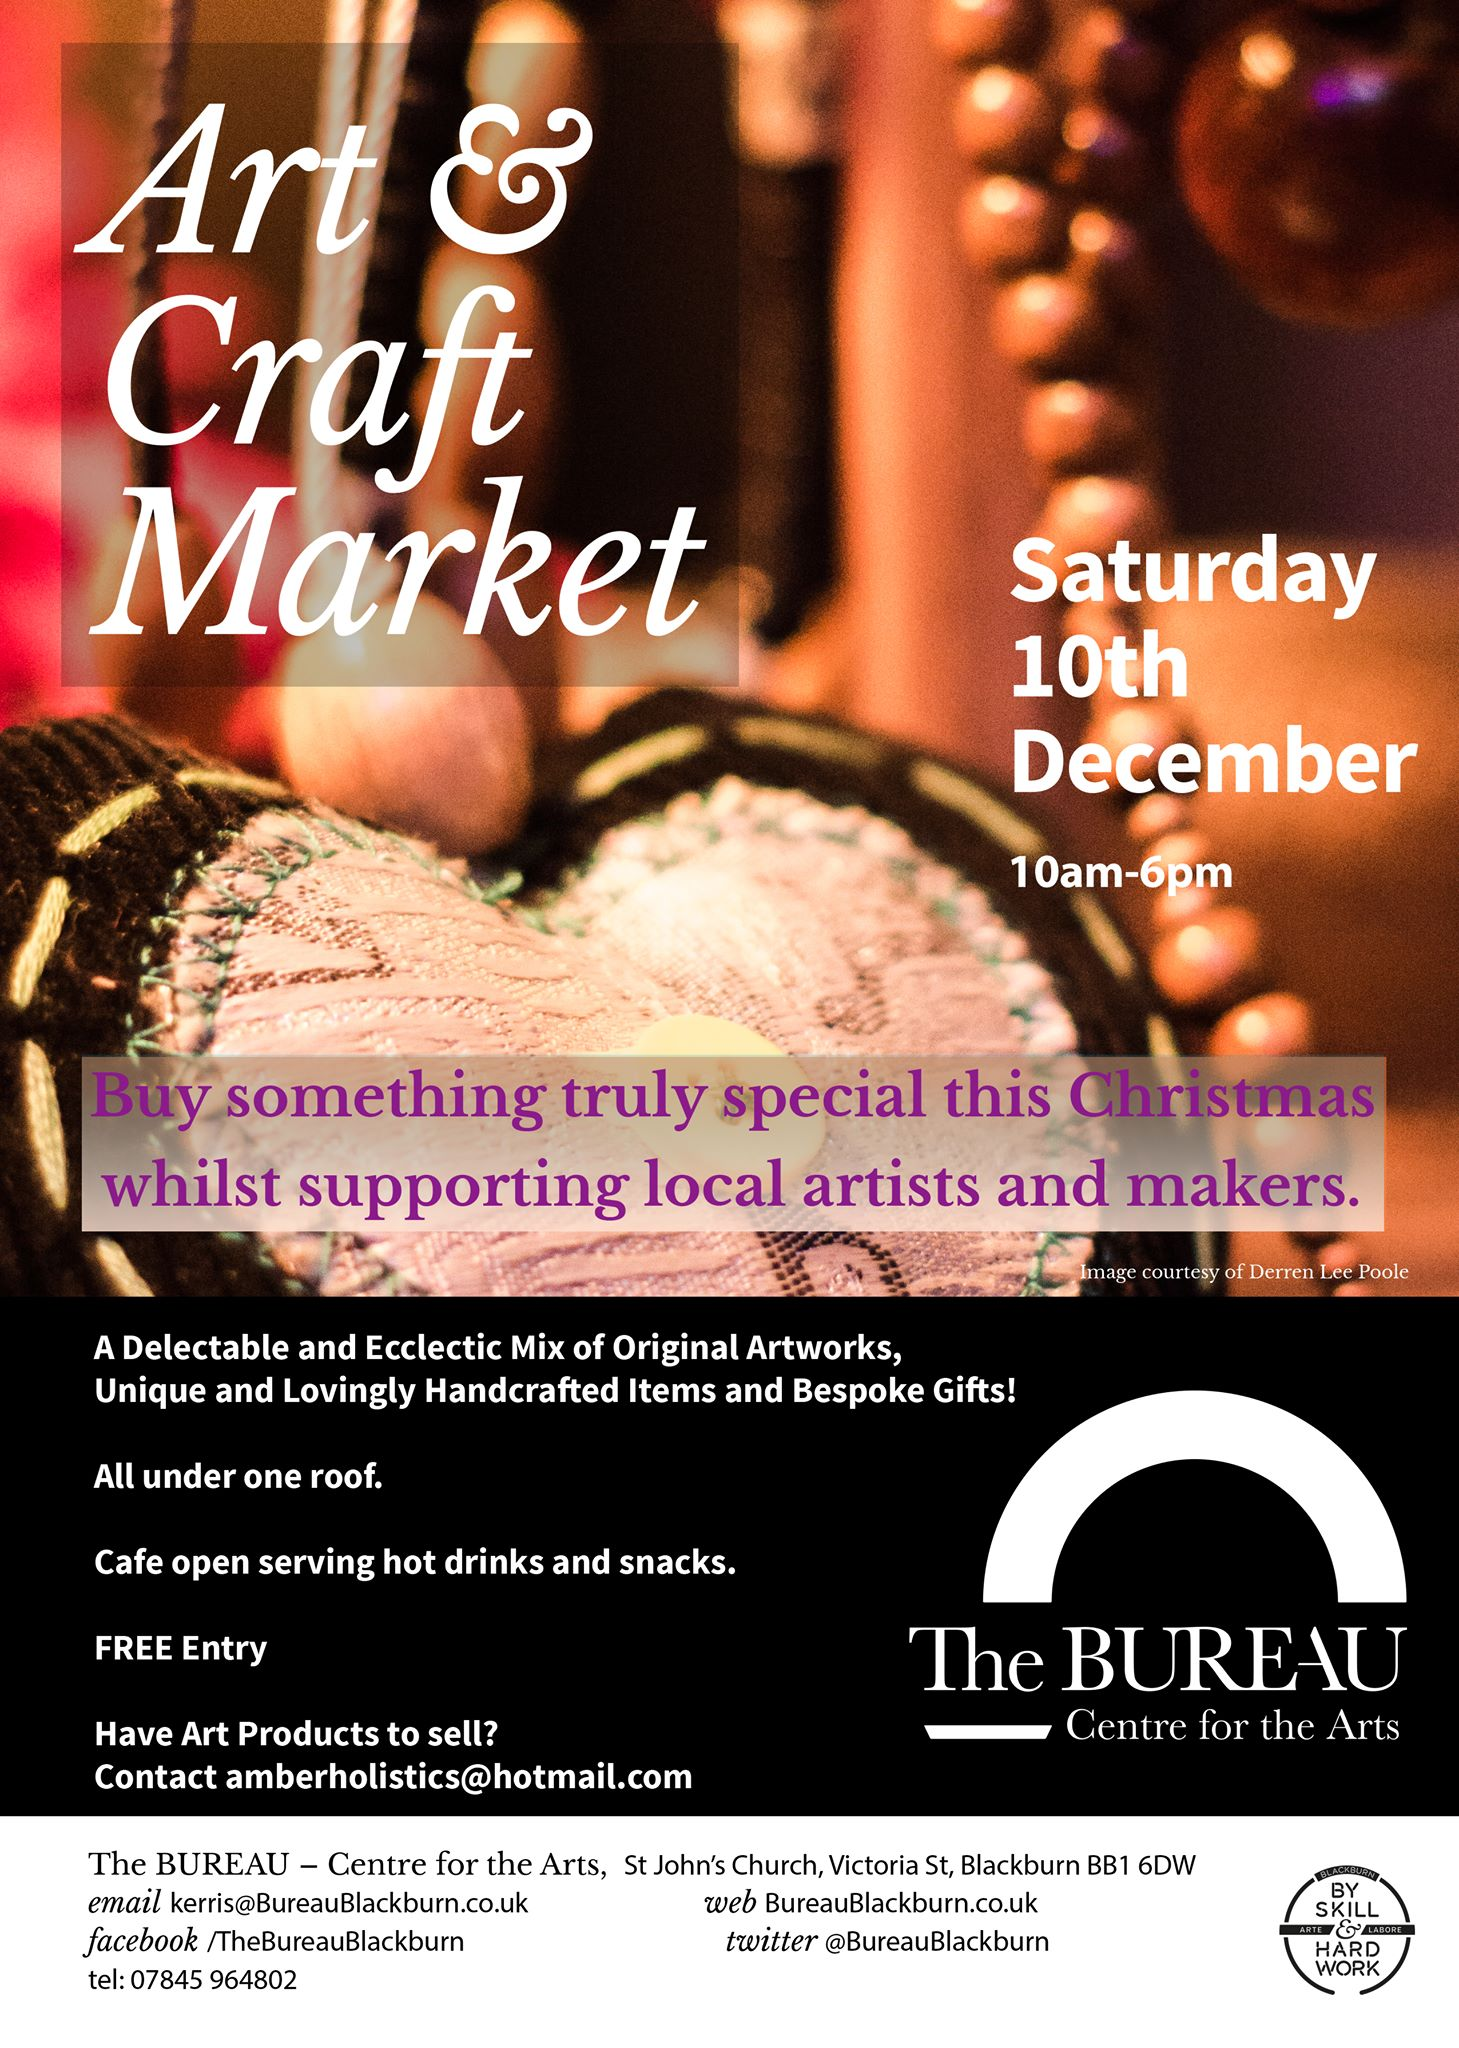 Art and Craft Market